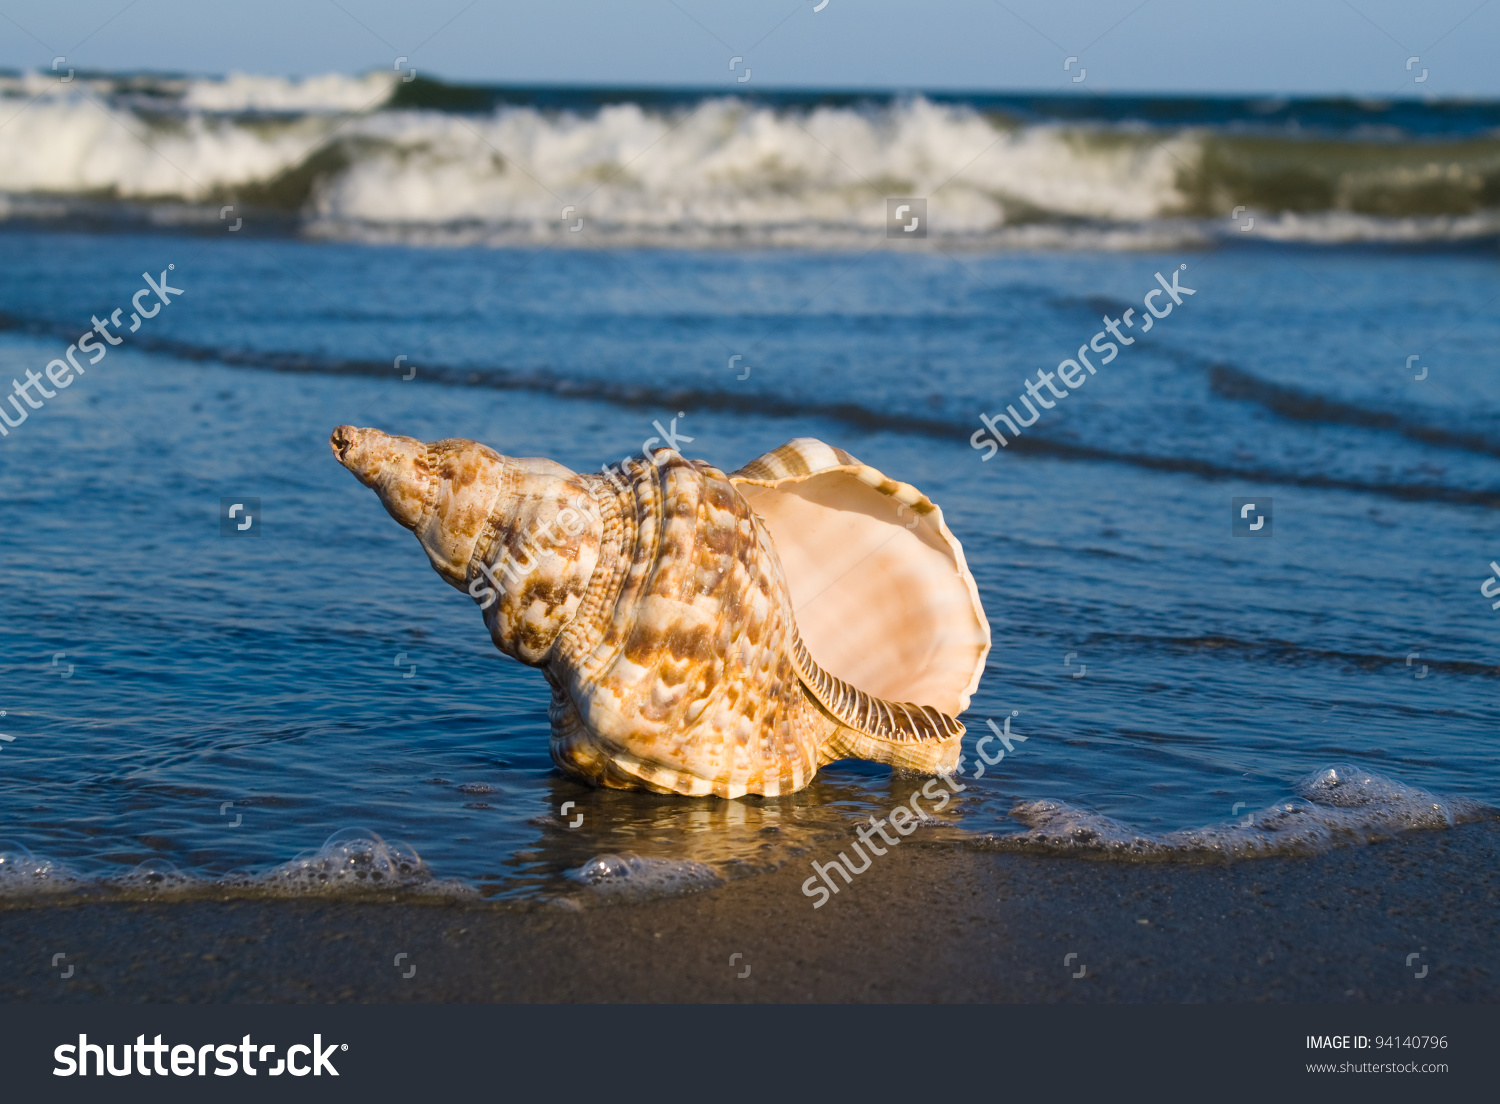 Triton Is Very Large Predatory Marine Gastropods (Snail) In The.